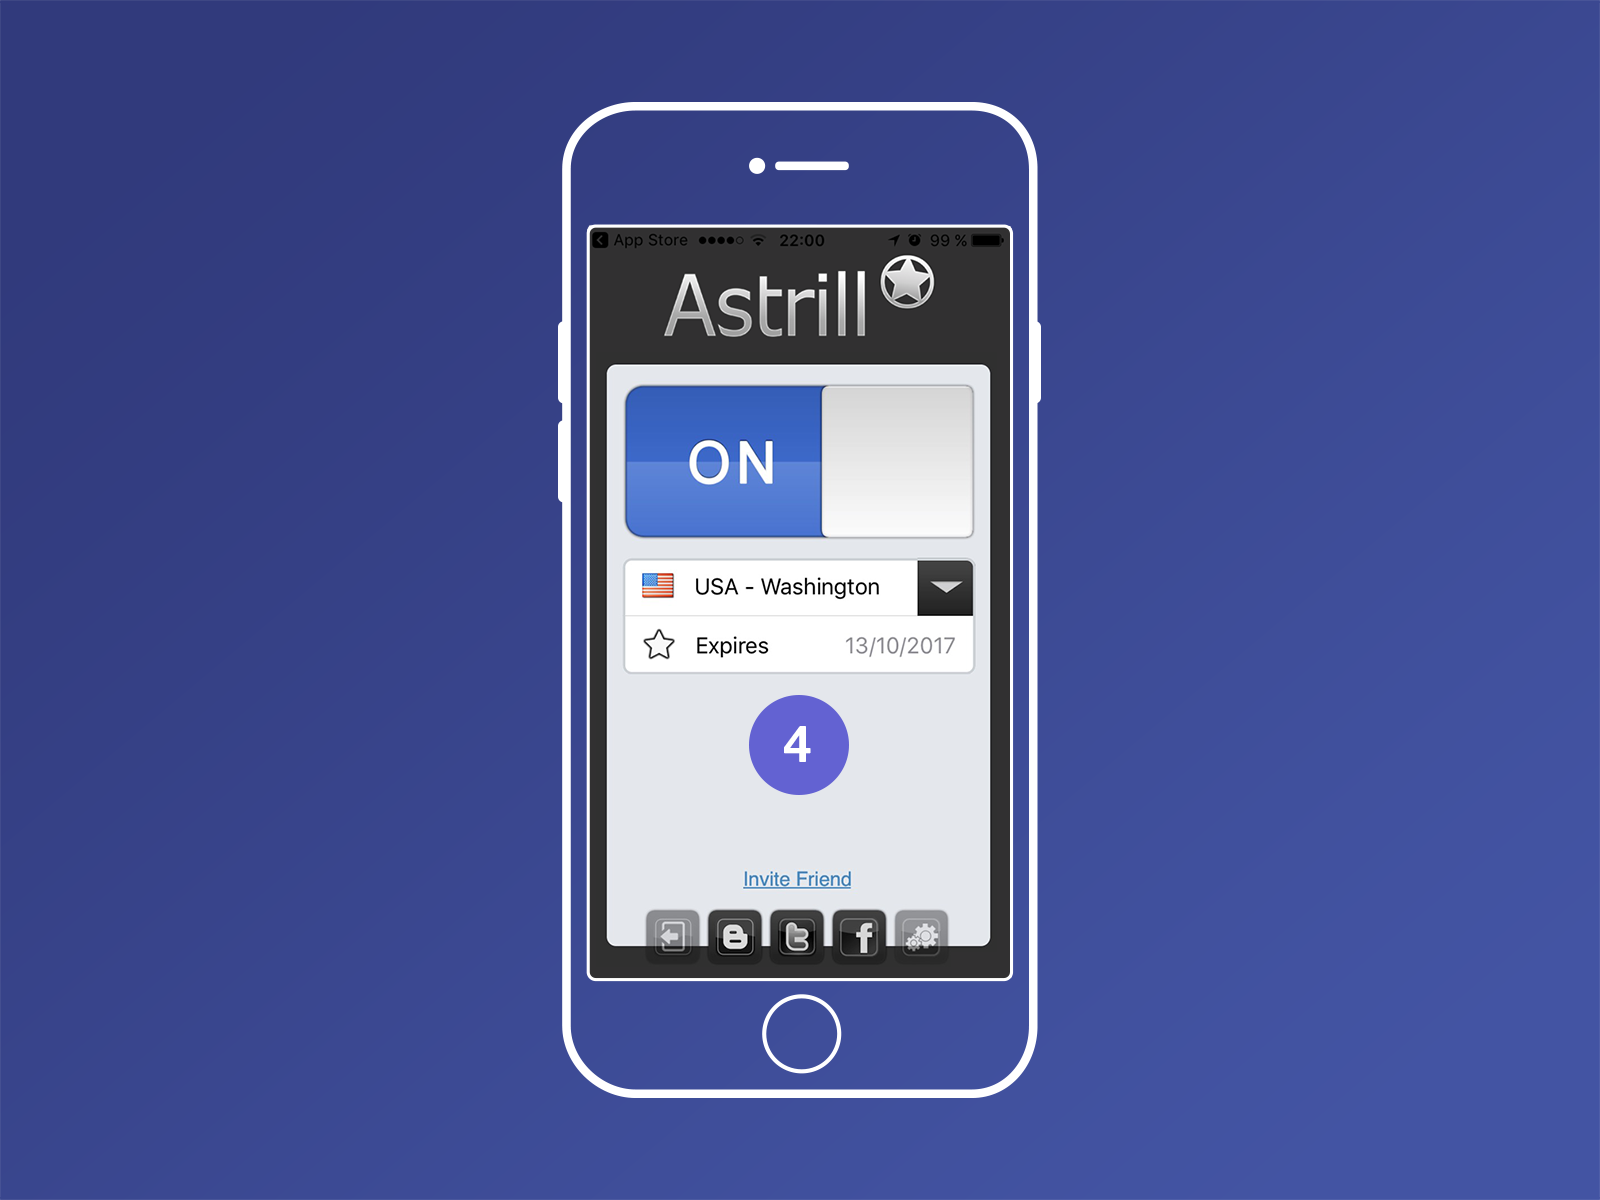 Browse the web securely from your iOS devices with Astrill VPN App